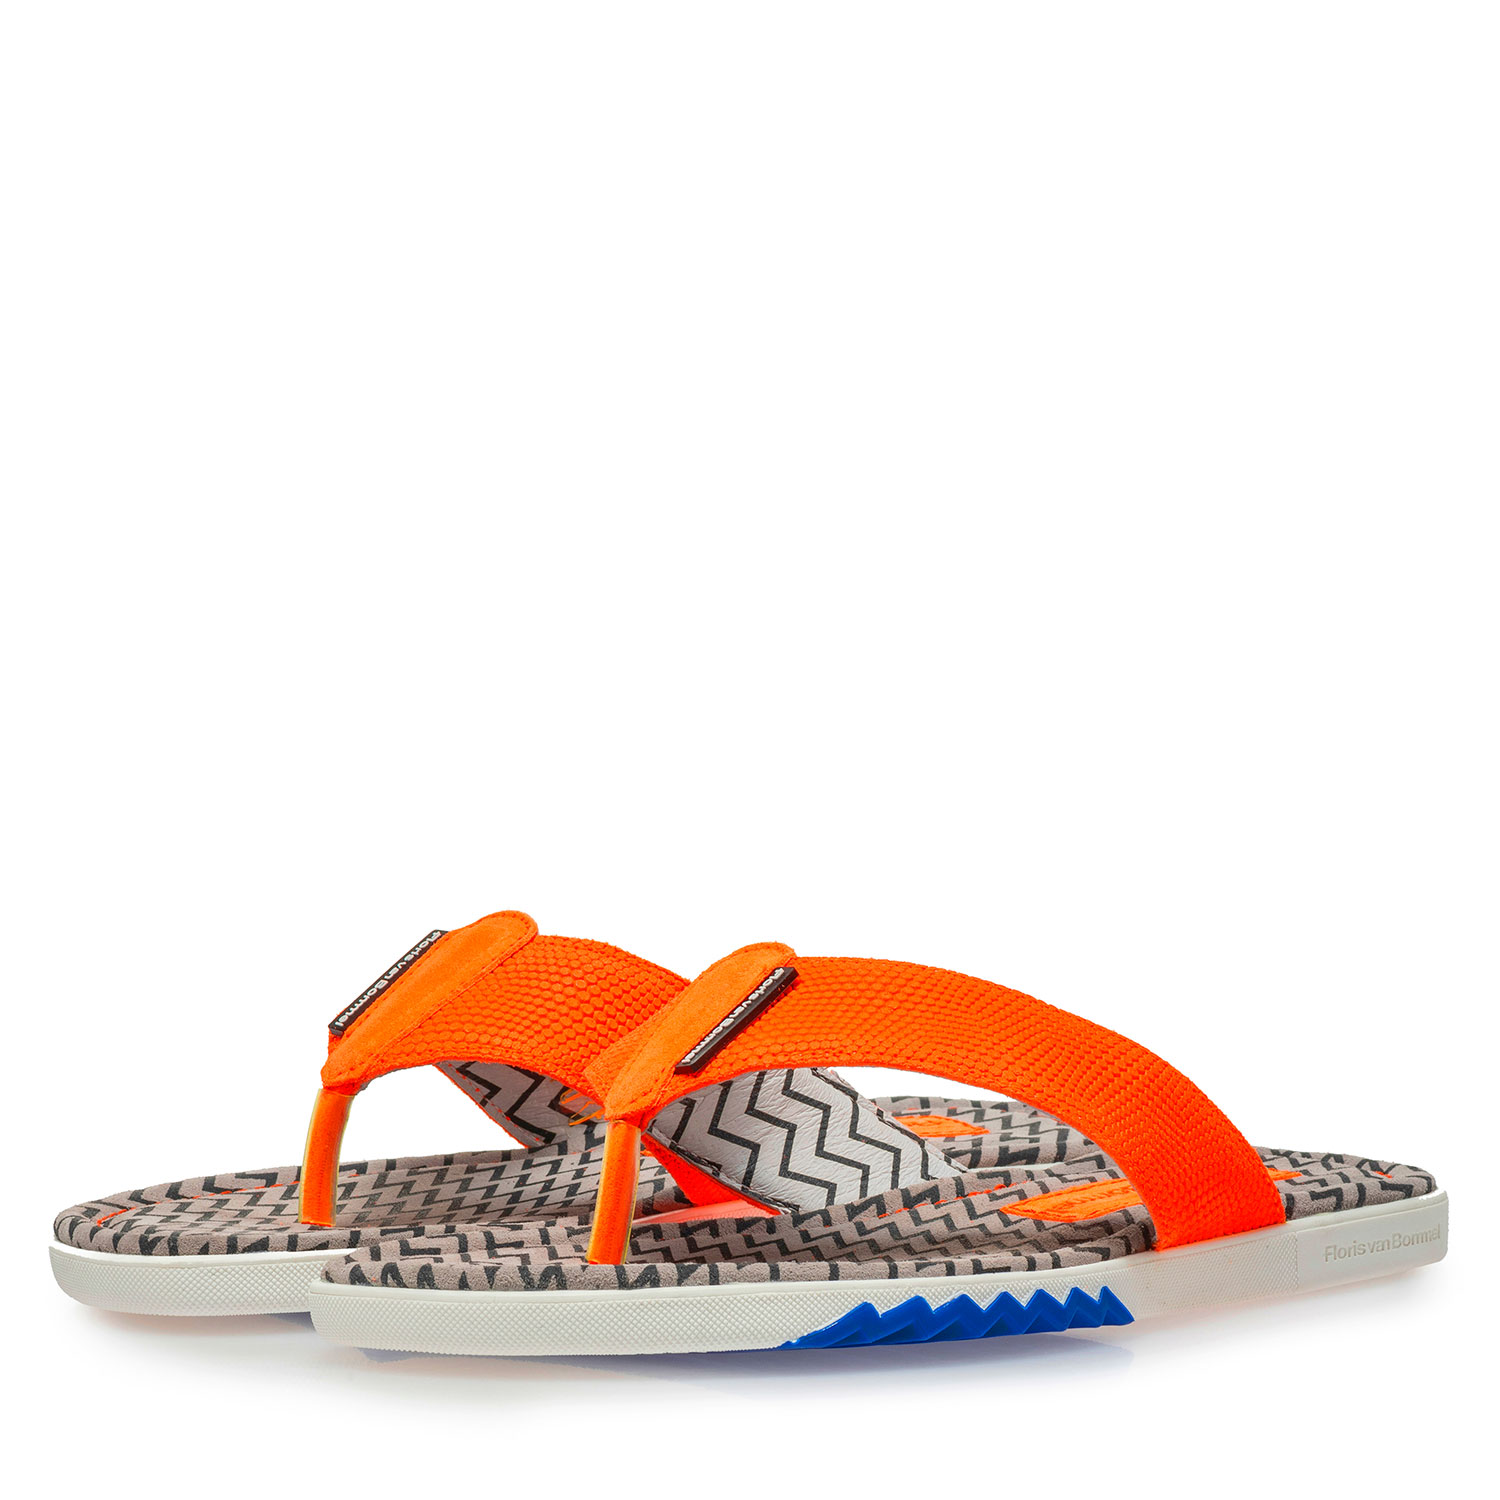 20201/19 - Orange suede leather thong slipper with print